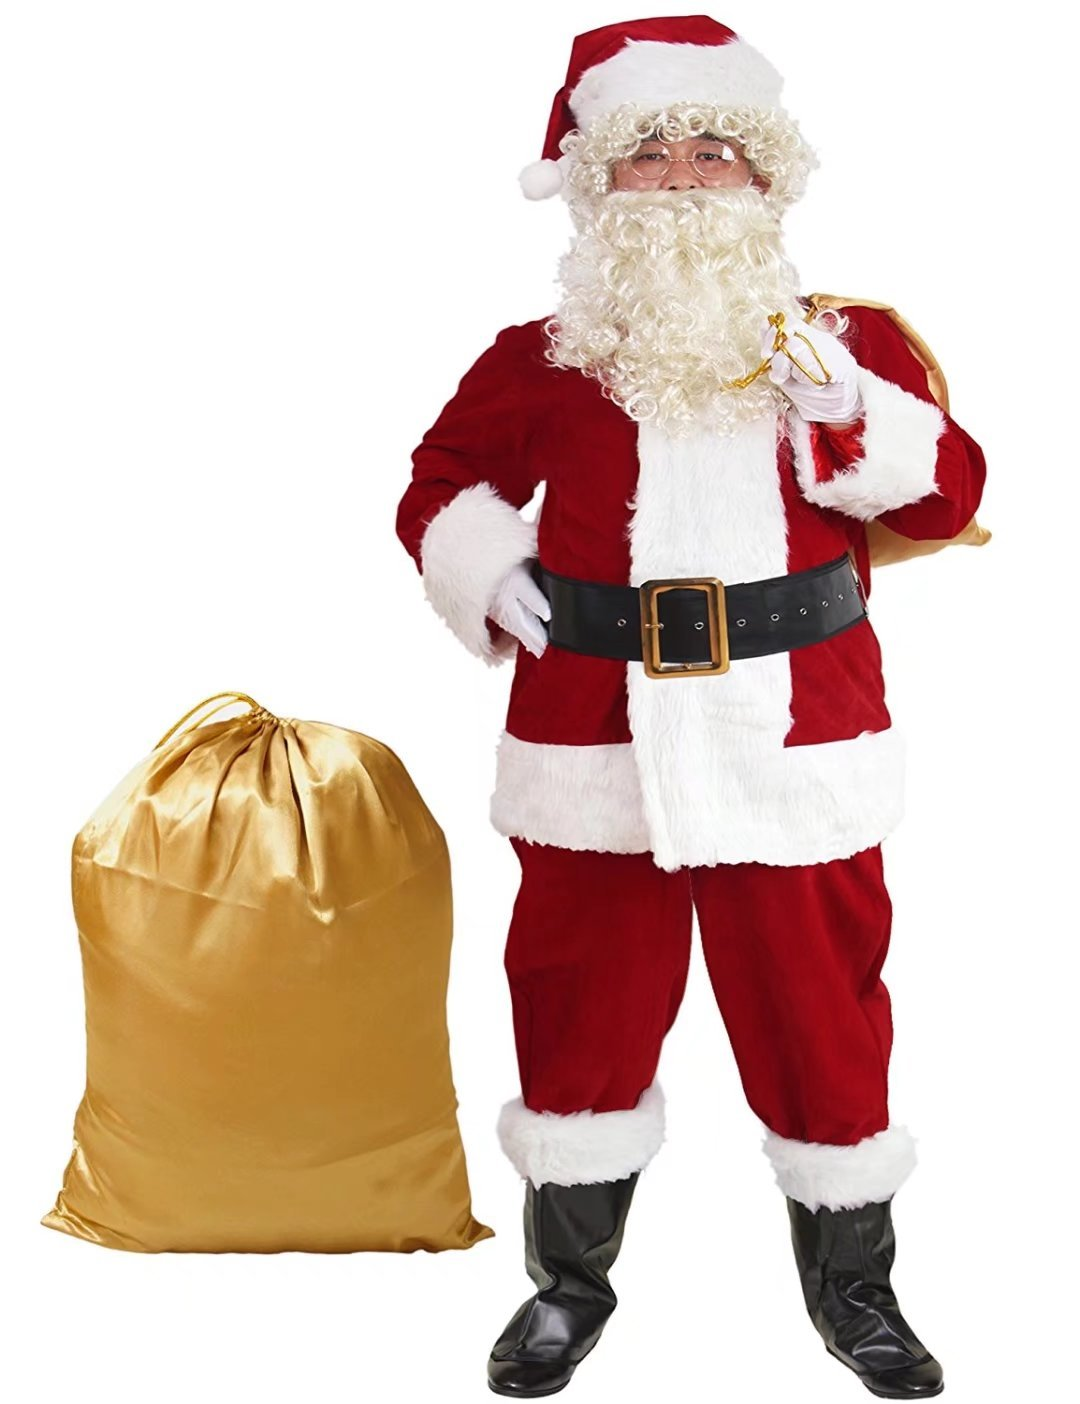 10 Pcs Complete Deluxe Velvet Christmas Santa Claus Costume Suit Adult (XL, Red) by Zollzirr (Image #2)